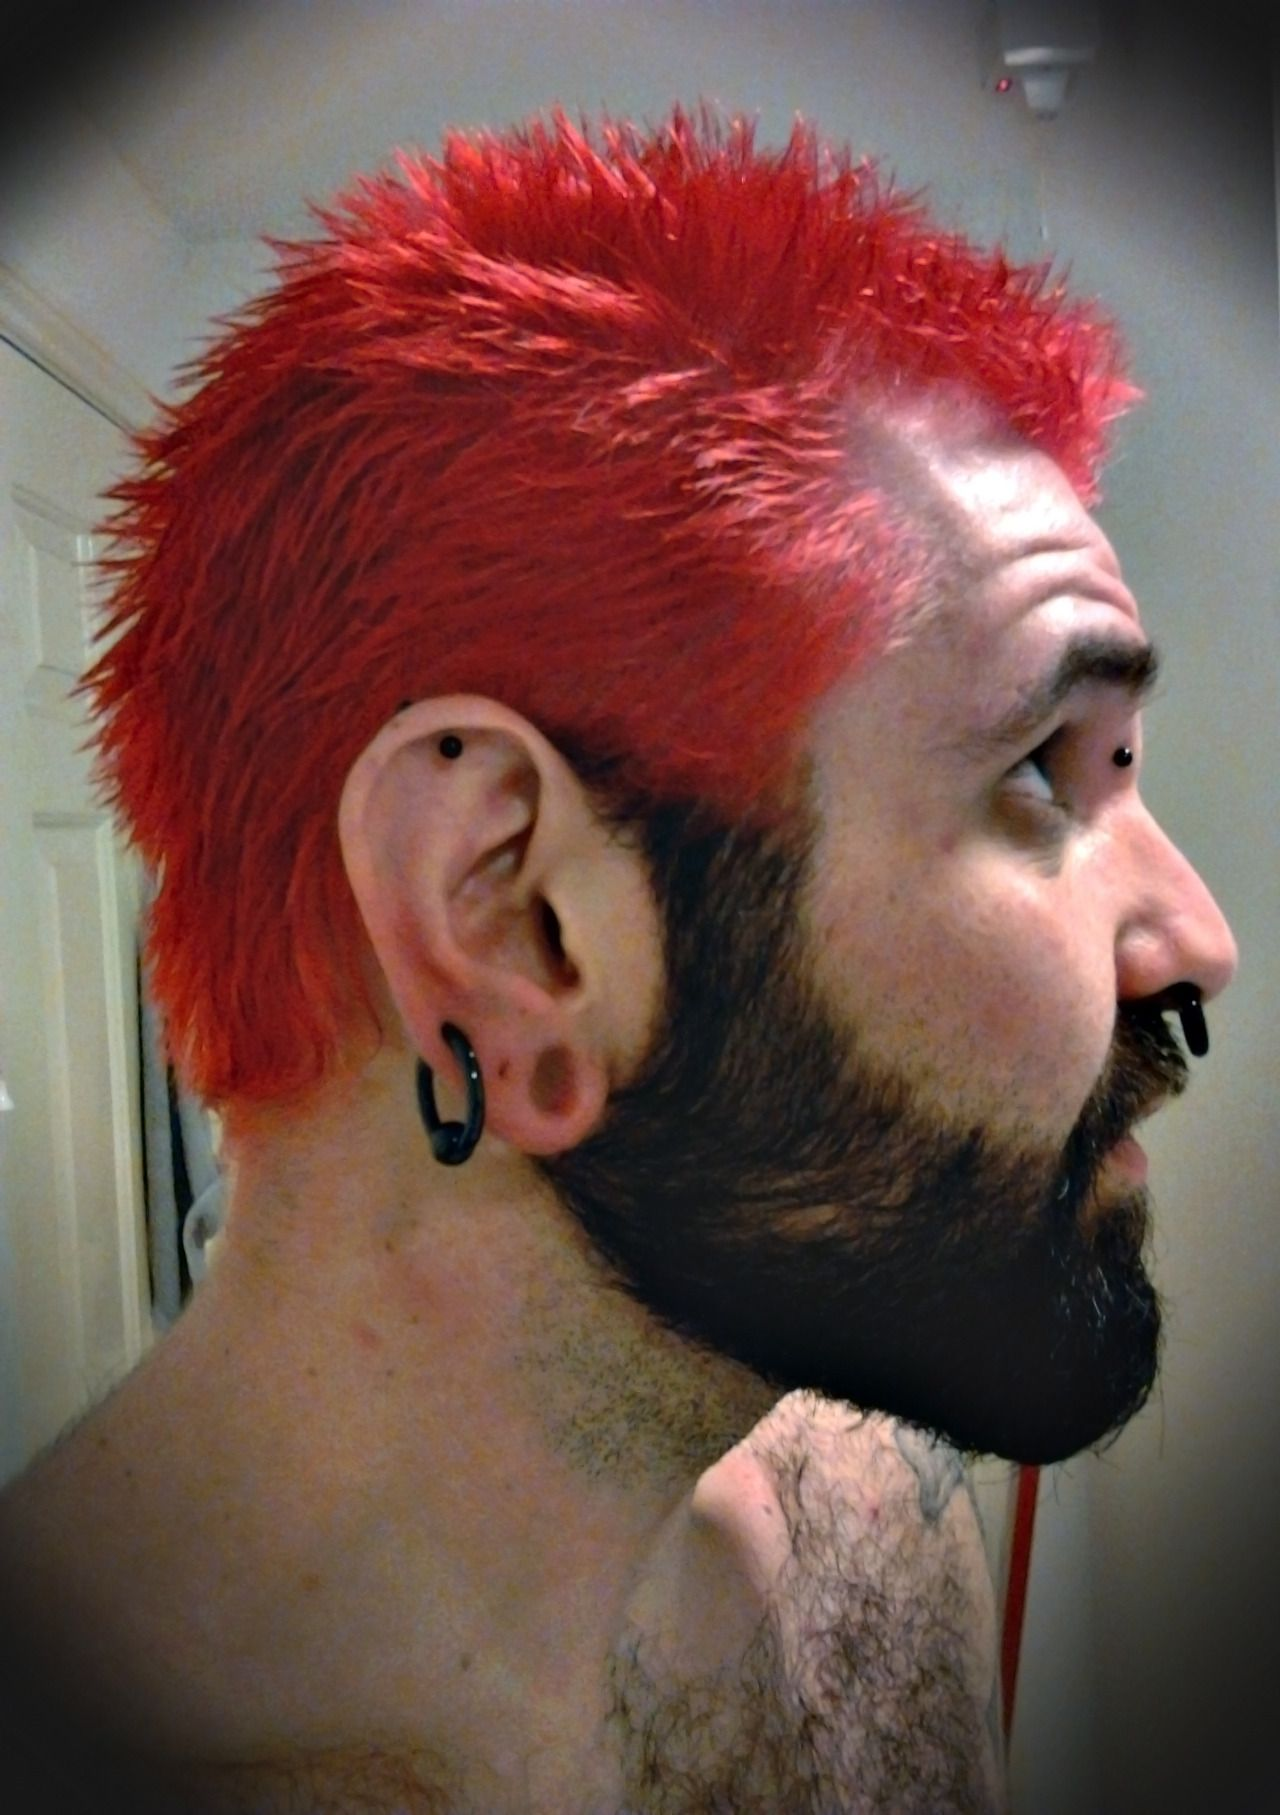 Rotandrage Just Washed The New Hair Dye Out Dyed Hair Beard Colour Hair And Beard Styles